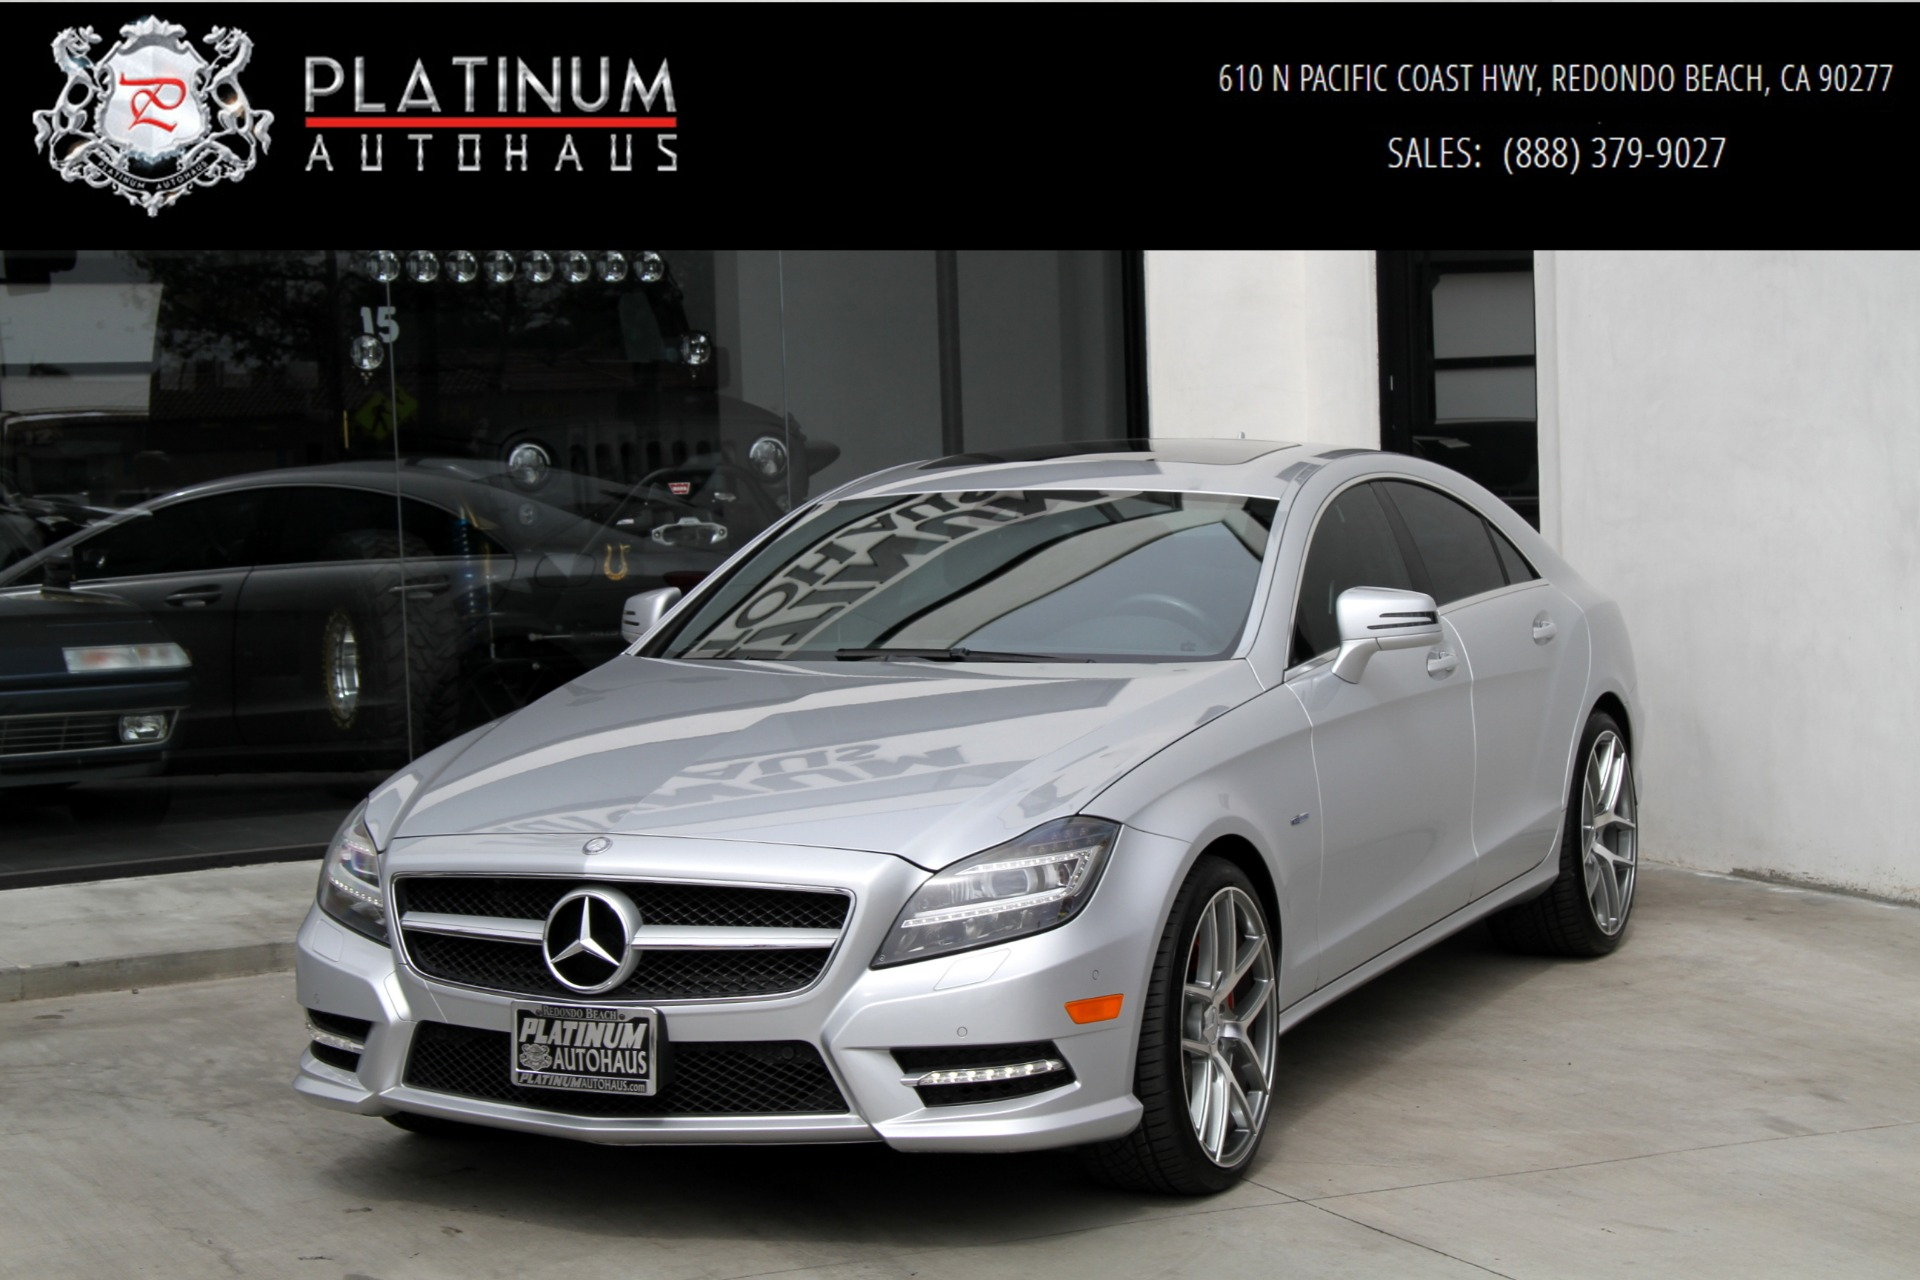 2012 mercedes benz cls 550 stock 5834b for sale near for Mercedes benz cls sale